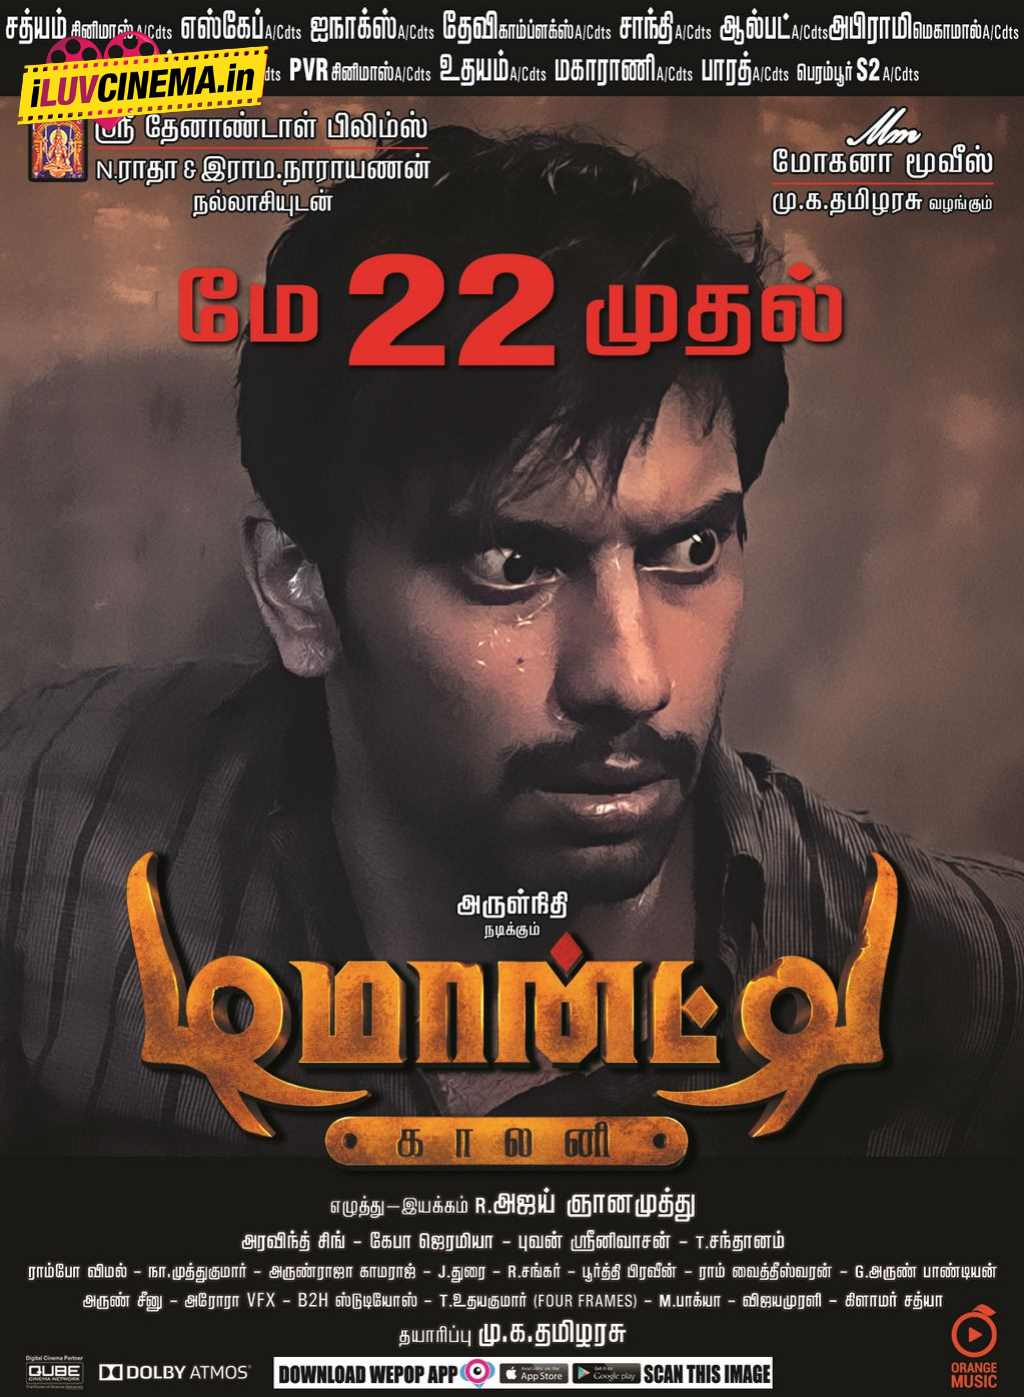 Demonte Colony – Legendado (2015)